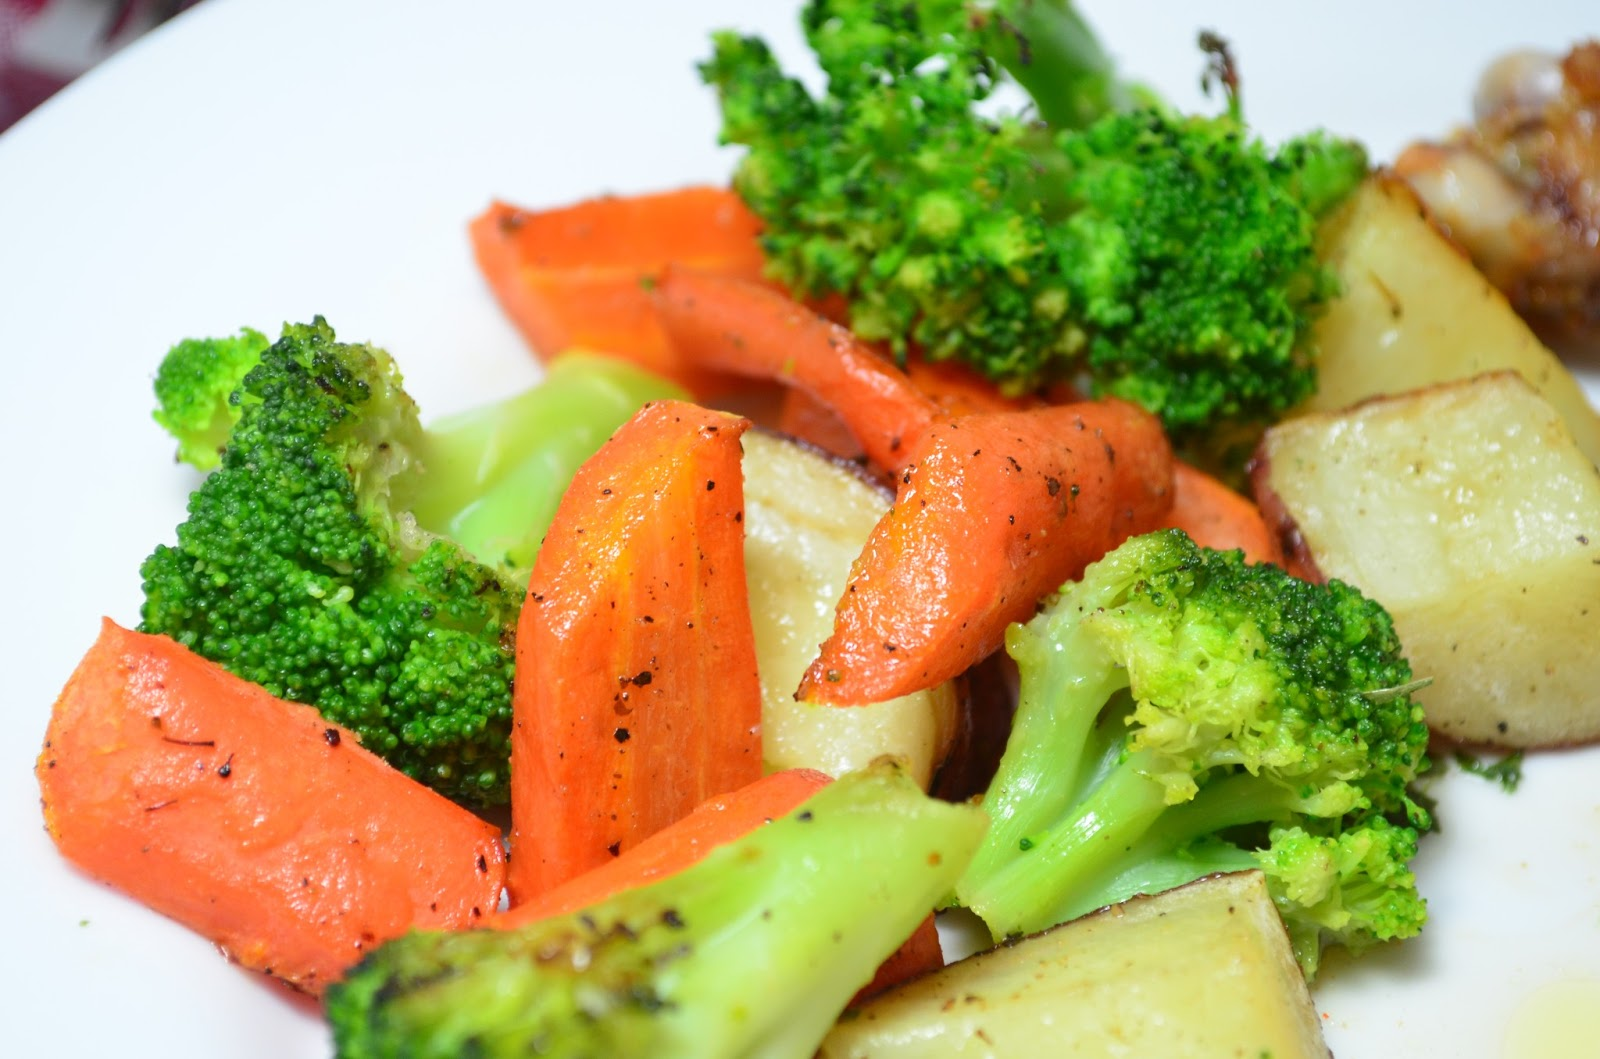 Roasted Broccoli And Carrots Recipes — Dishmaps